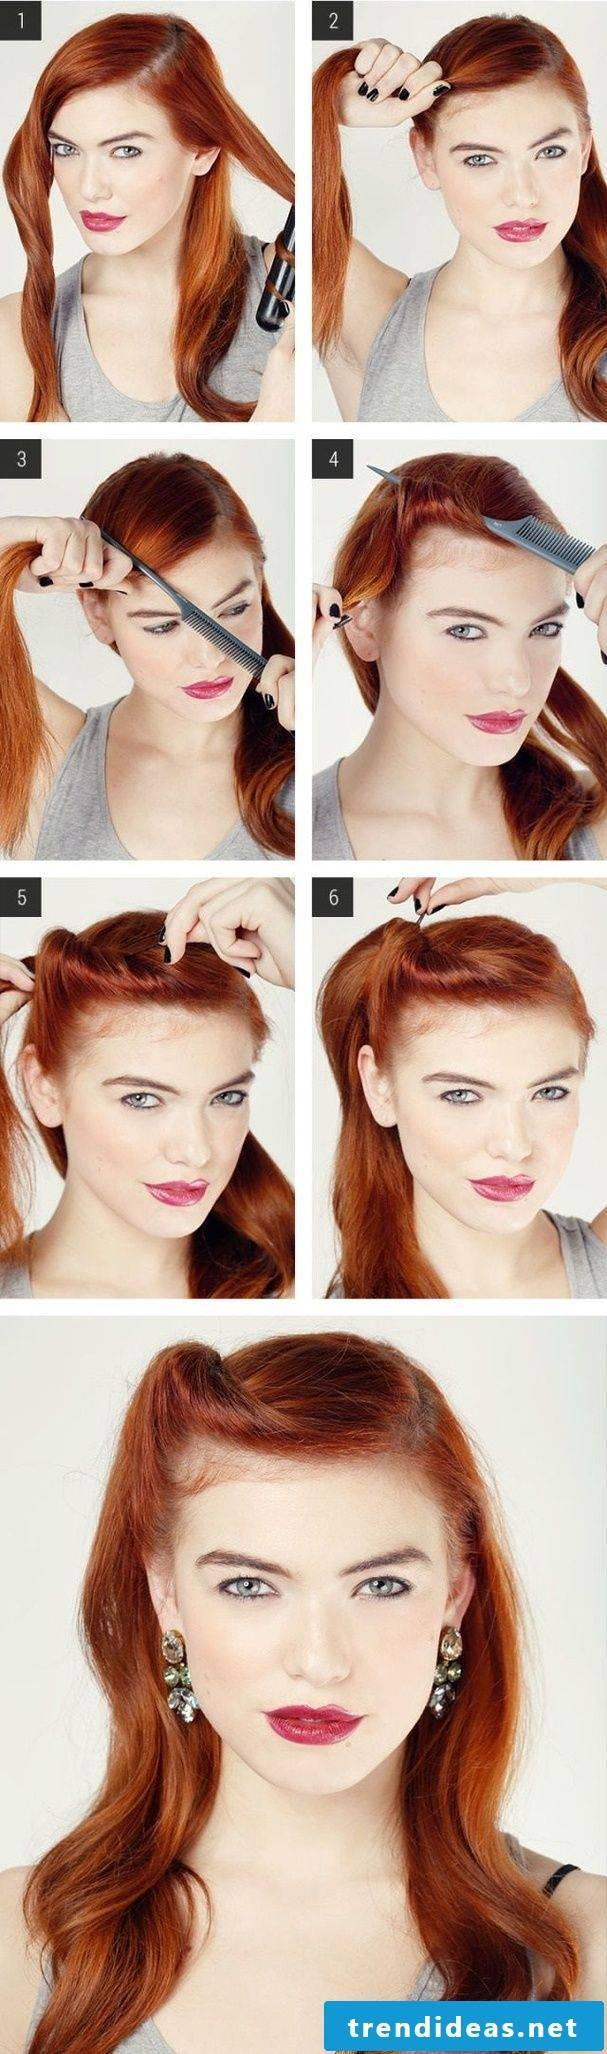 Modern meets Rockabilly - The result looks beautiful!